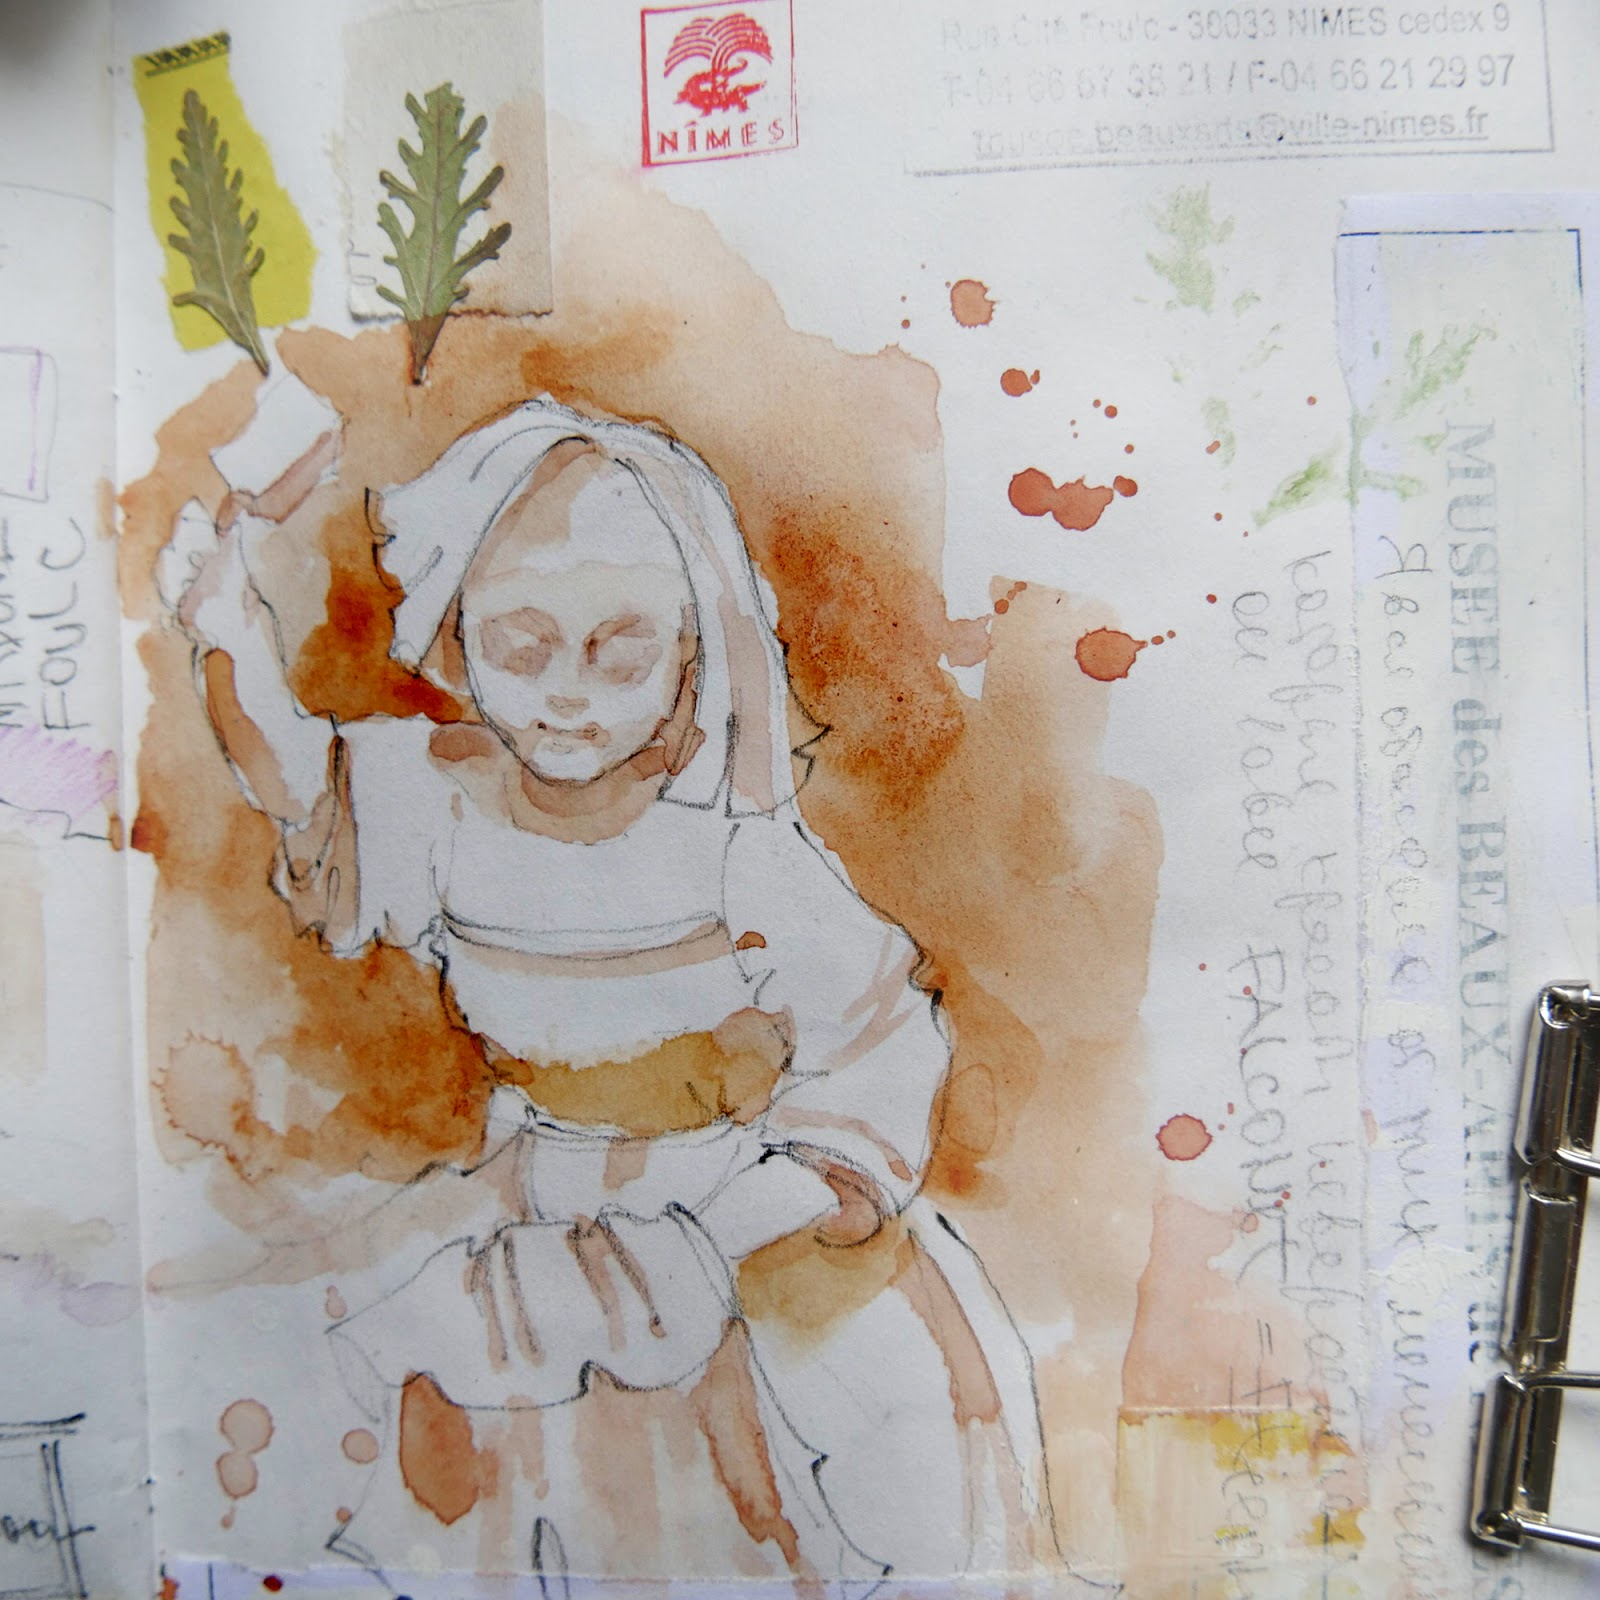 Watercolor sketchbook France Nimes  наброски франция